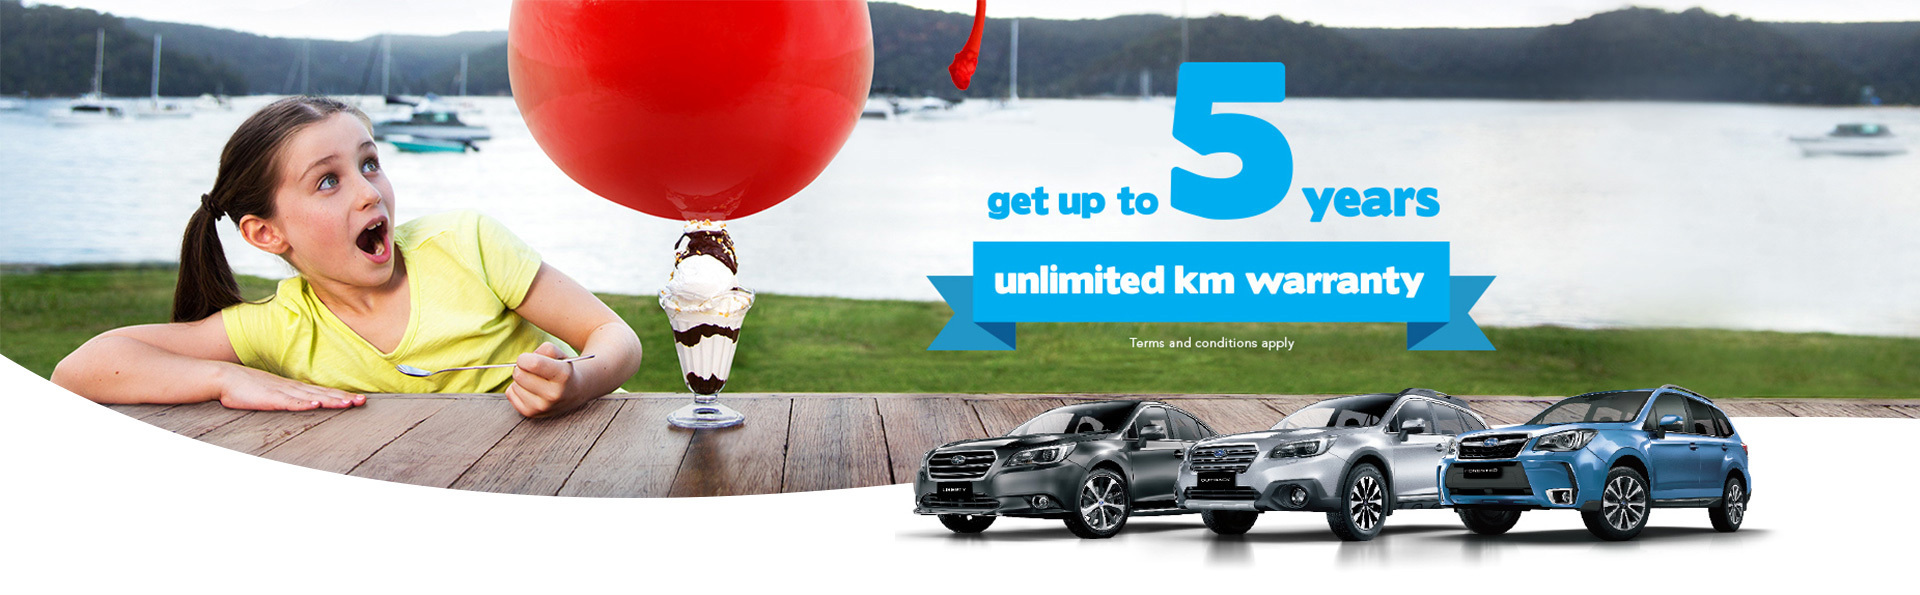 Subaru - National Offer - Up To 5 years unlimited km warranty